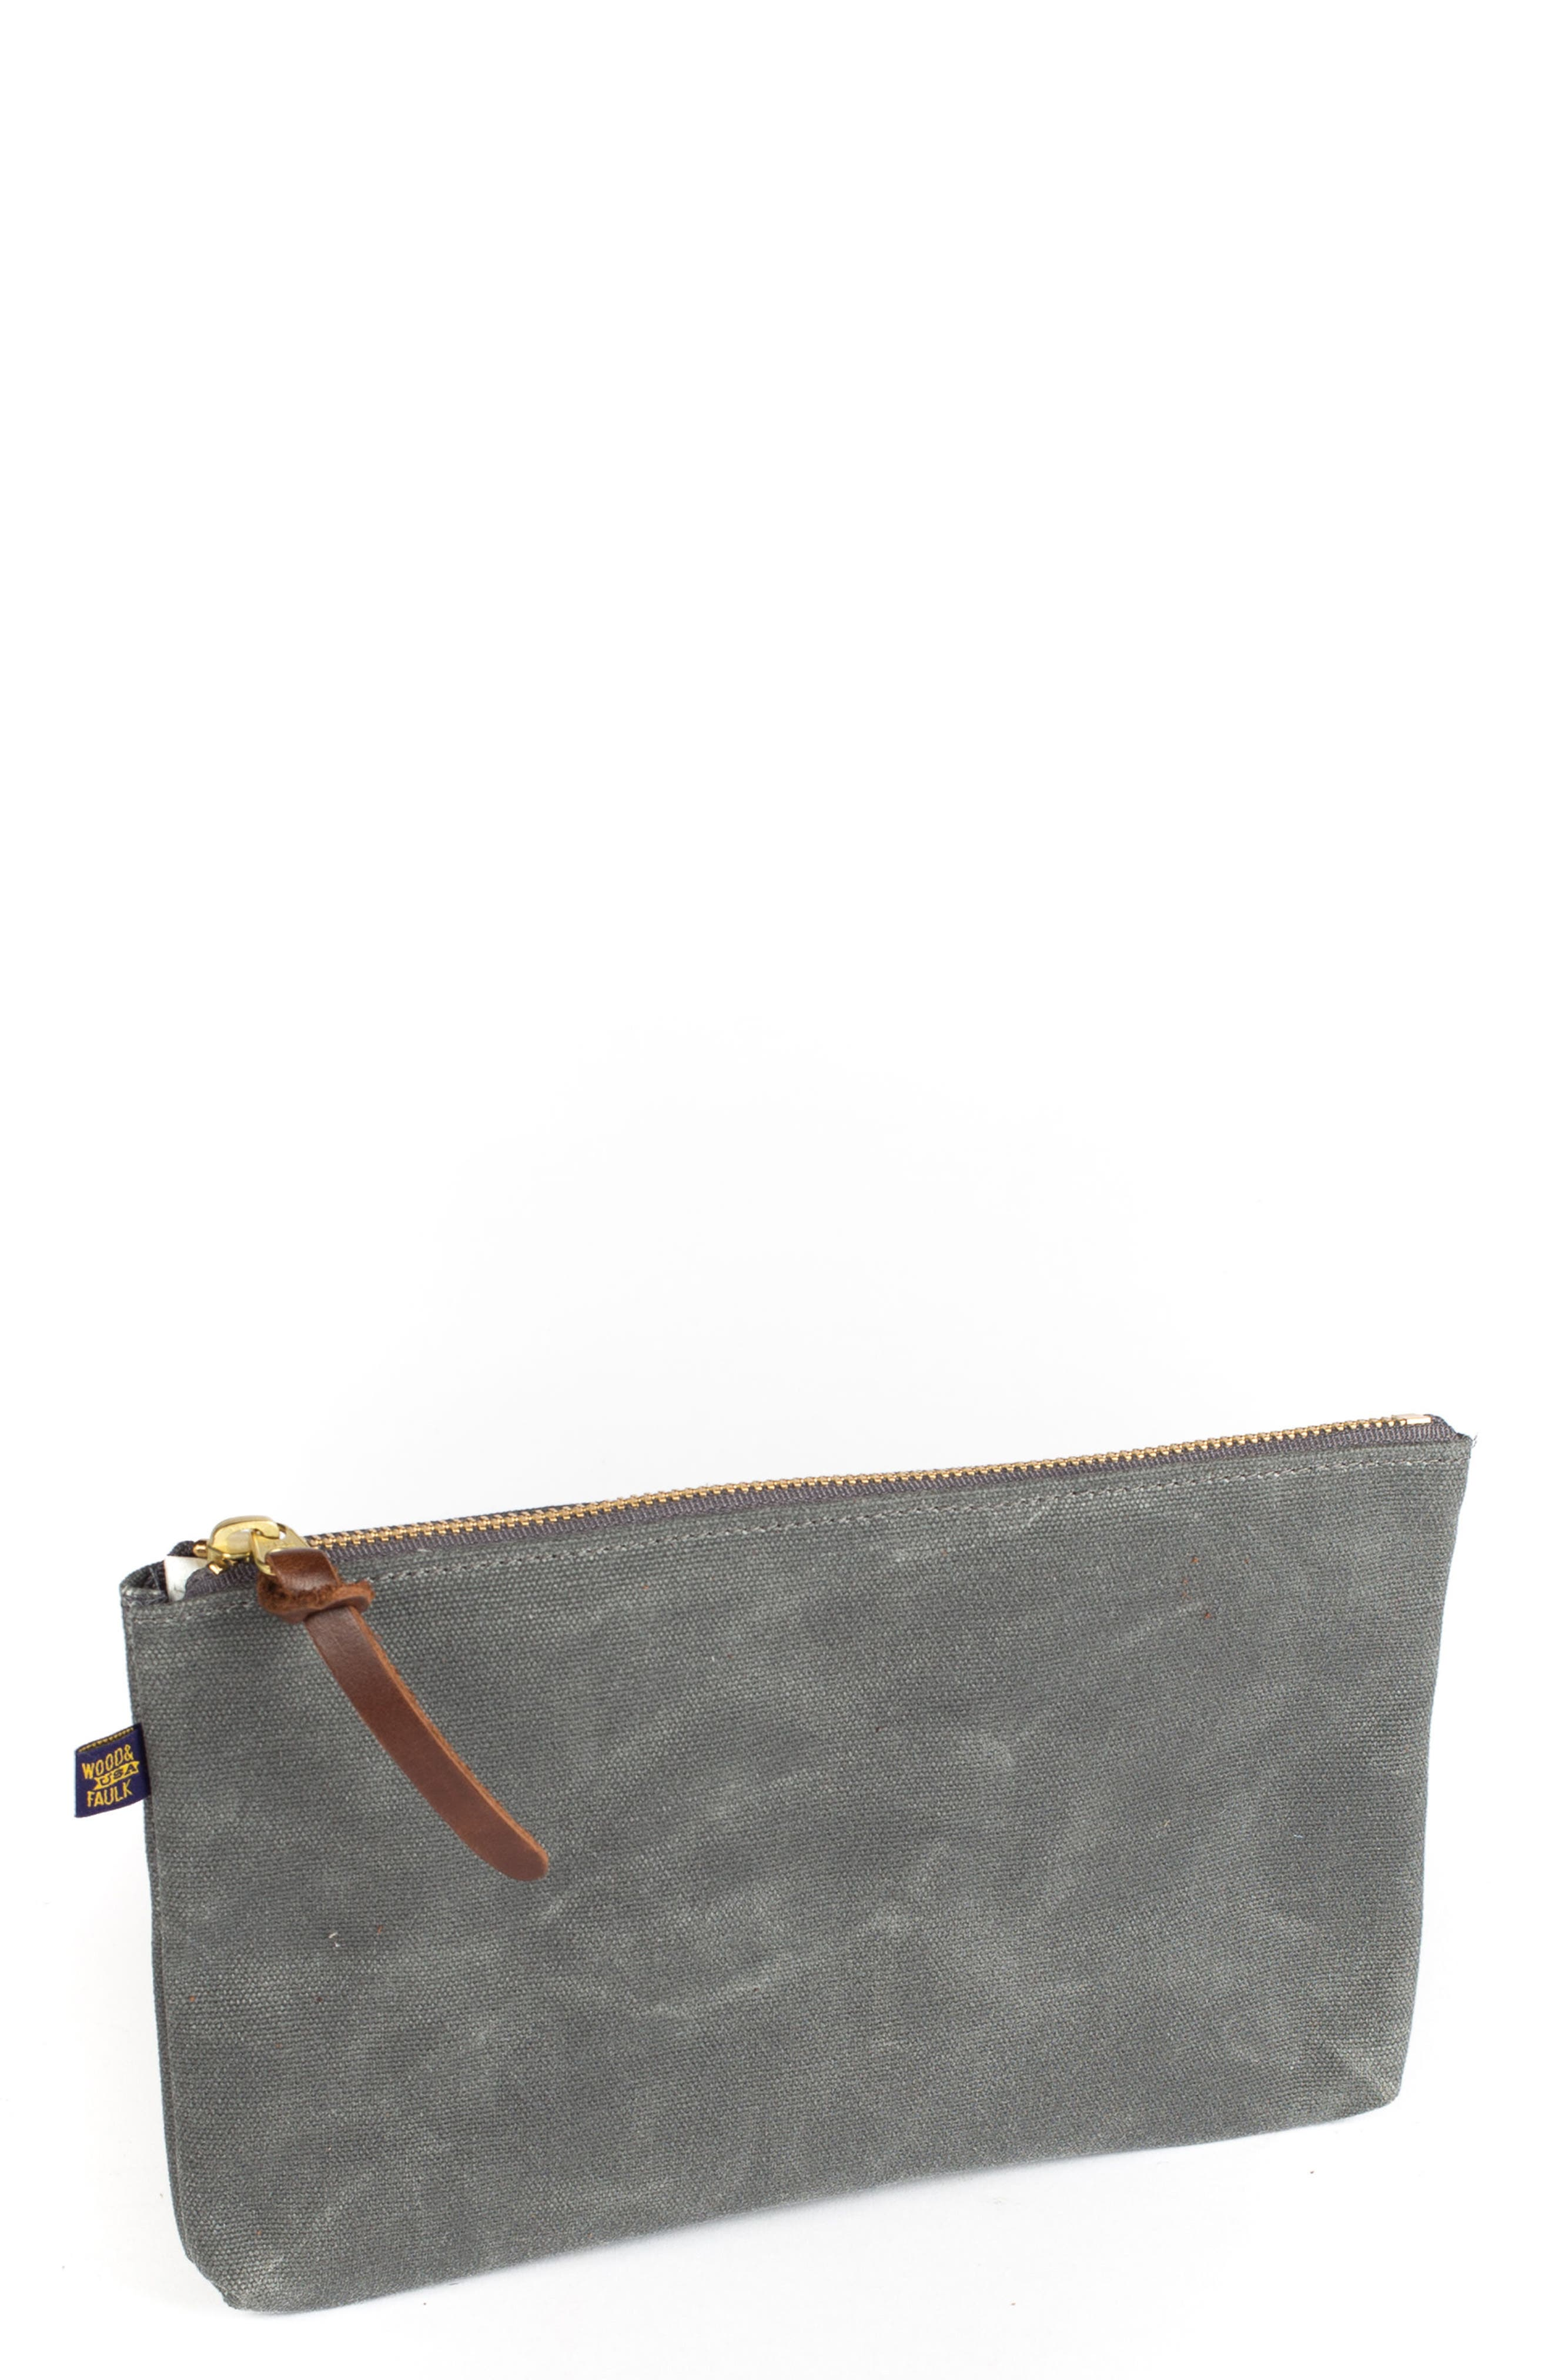 Alternate Image 1 Selected - Wood&Faulk Waxed Canvas Zip Pouch